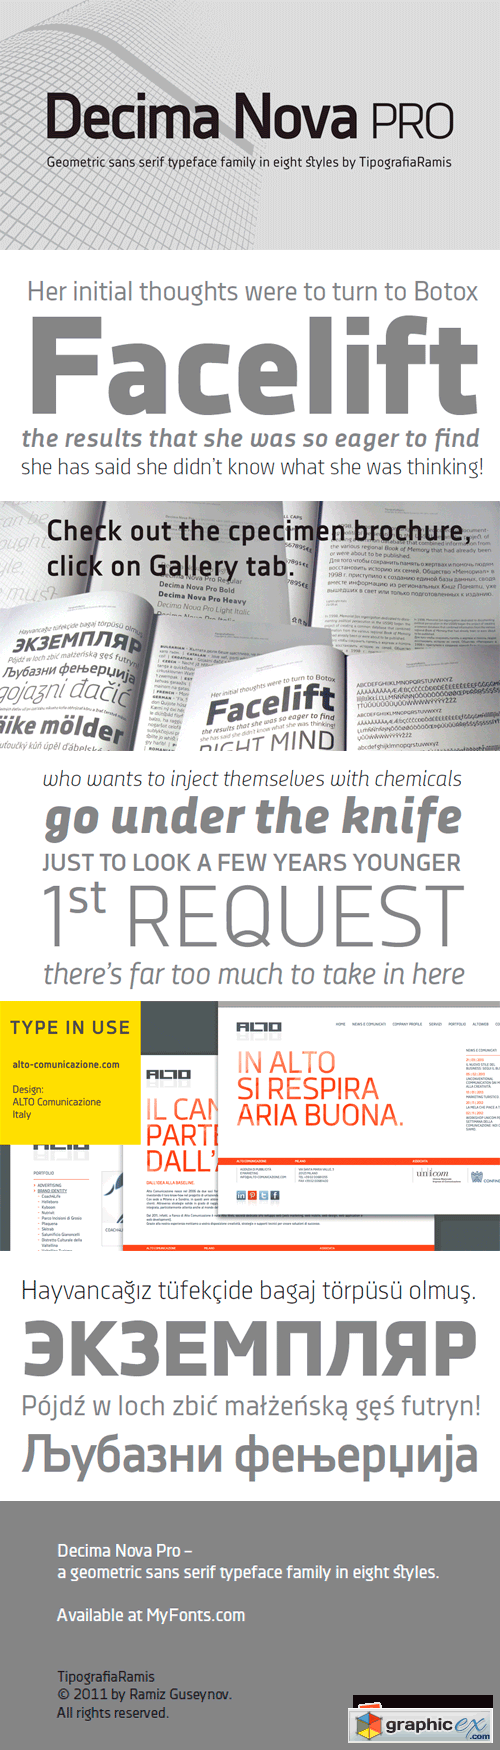 Decima Nova Pro Font Family - 8 Fonts for $270